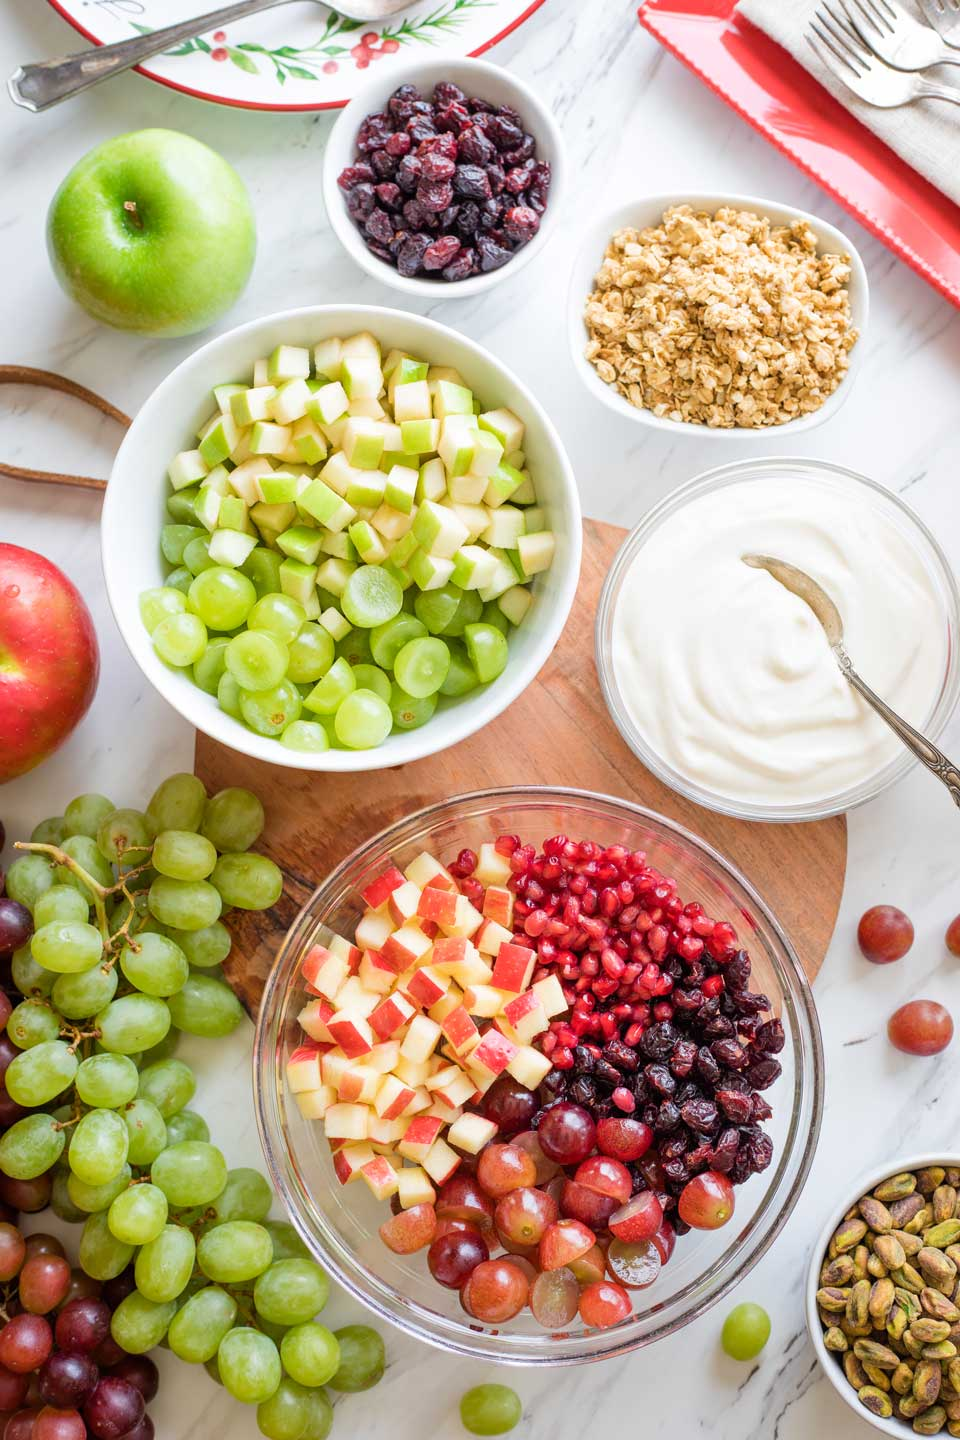 Overhead of prepped ingredients: one bowl of red fruit, one bowl of green fruit, one bowl of fruit salad dressing, plus bowls of pistachios and extra pomegranate arils and cranberries.